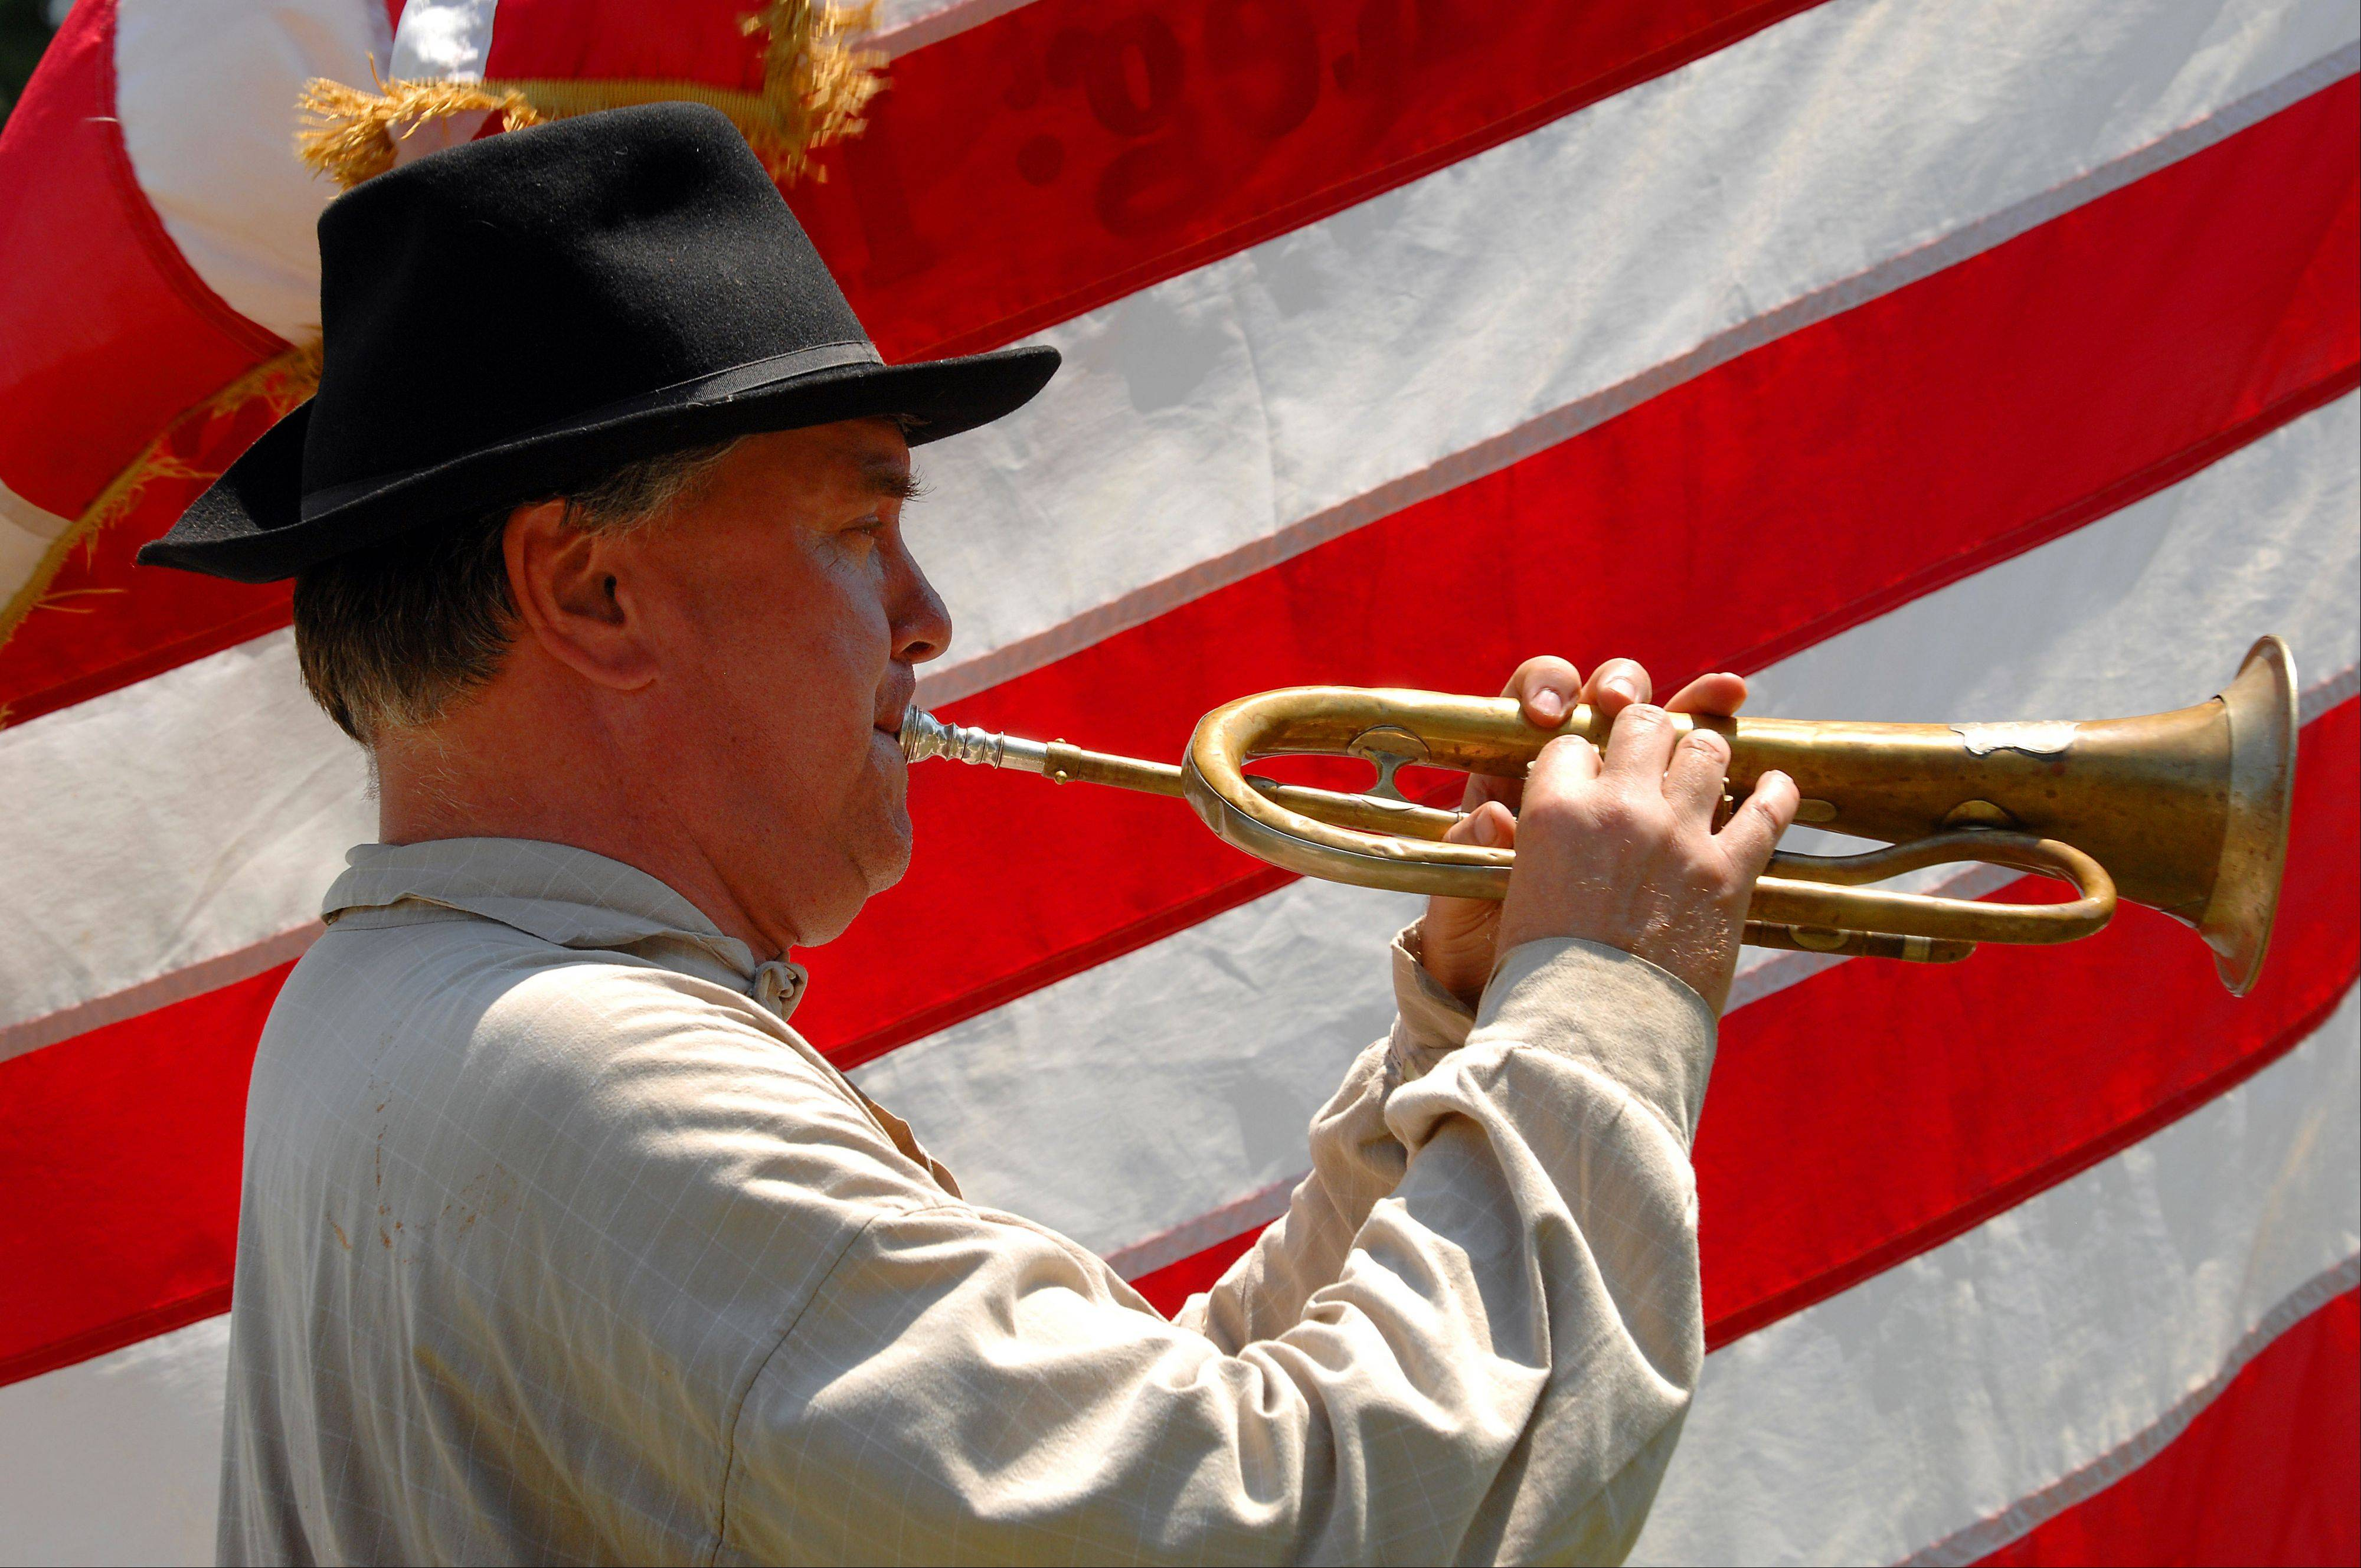 R.J. Samp of Wheaton blows his Fluegel horn against the backdrop of the American flag.